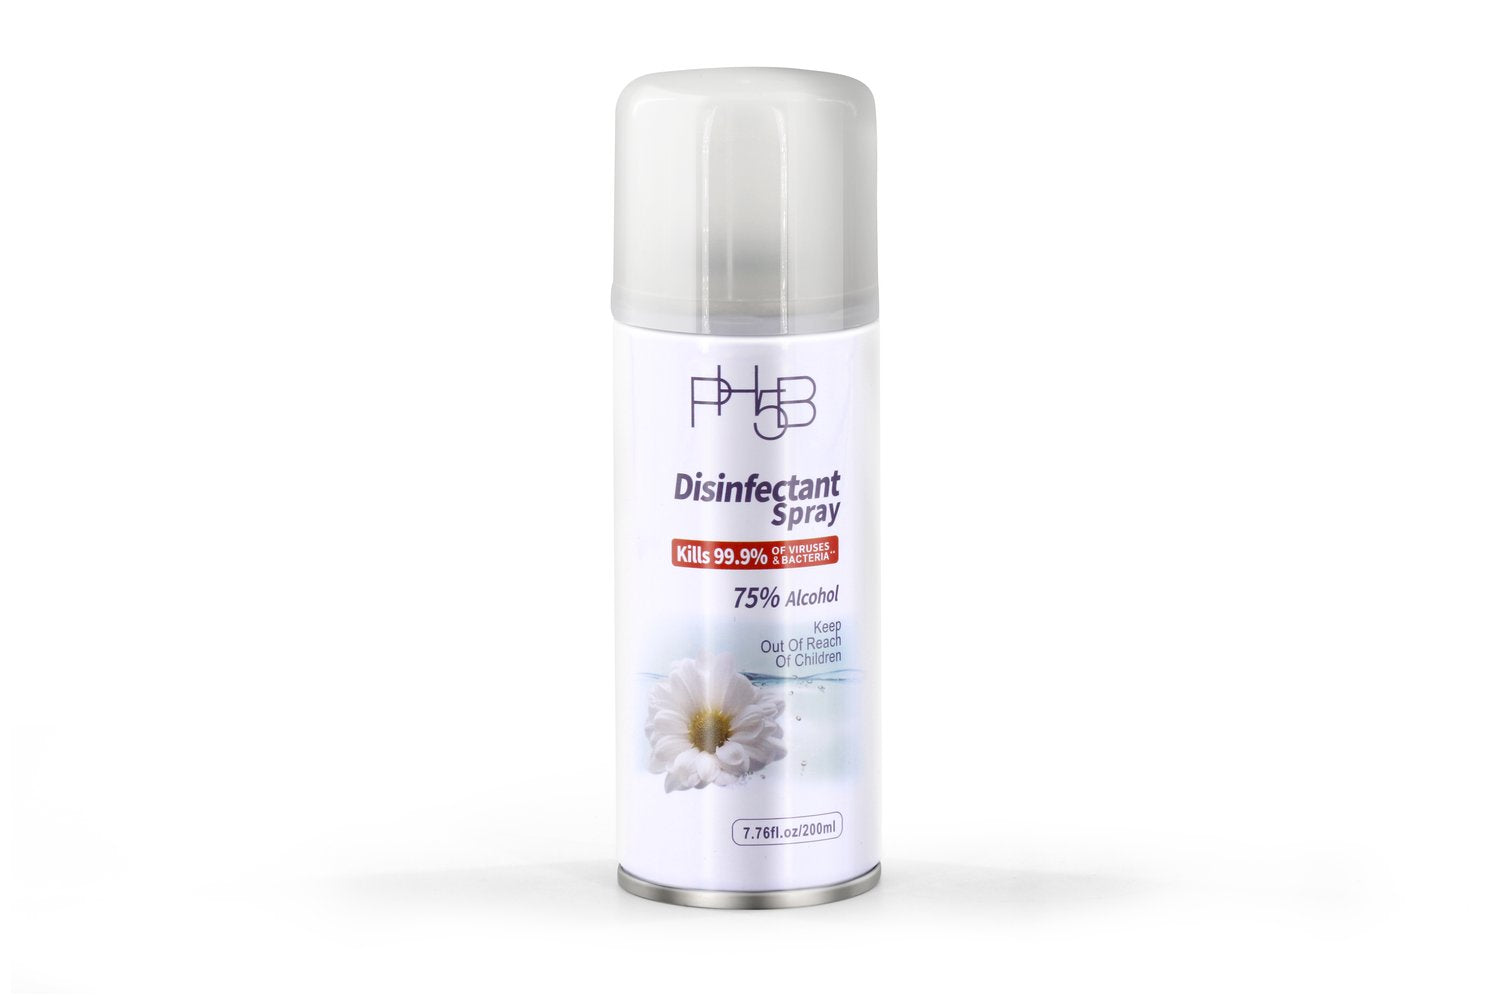 Ph5b 75% Alcohol Aerosol Disinfectant spray 7.75oz